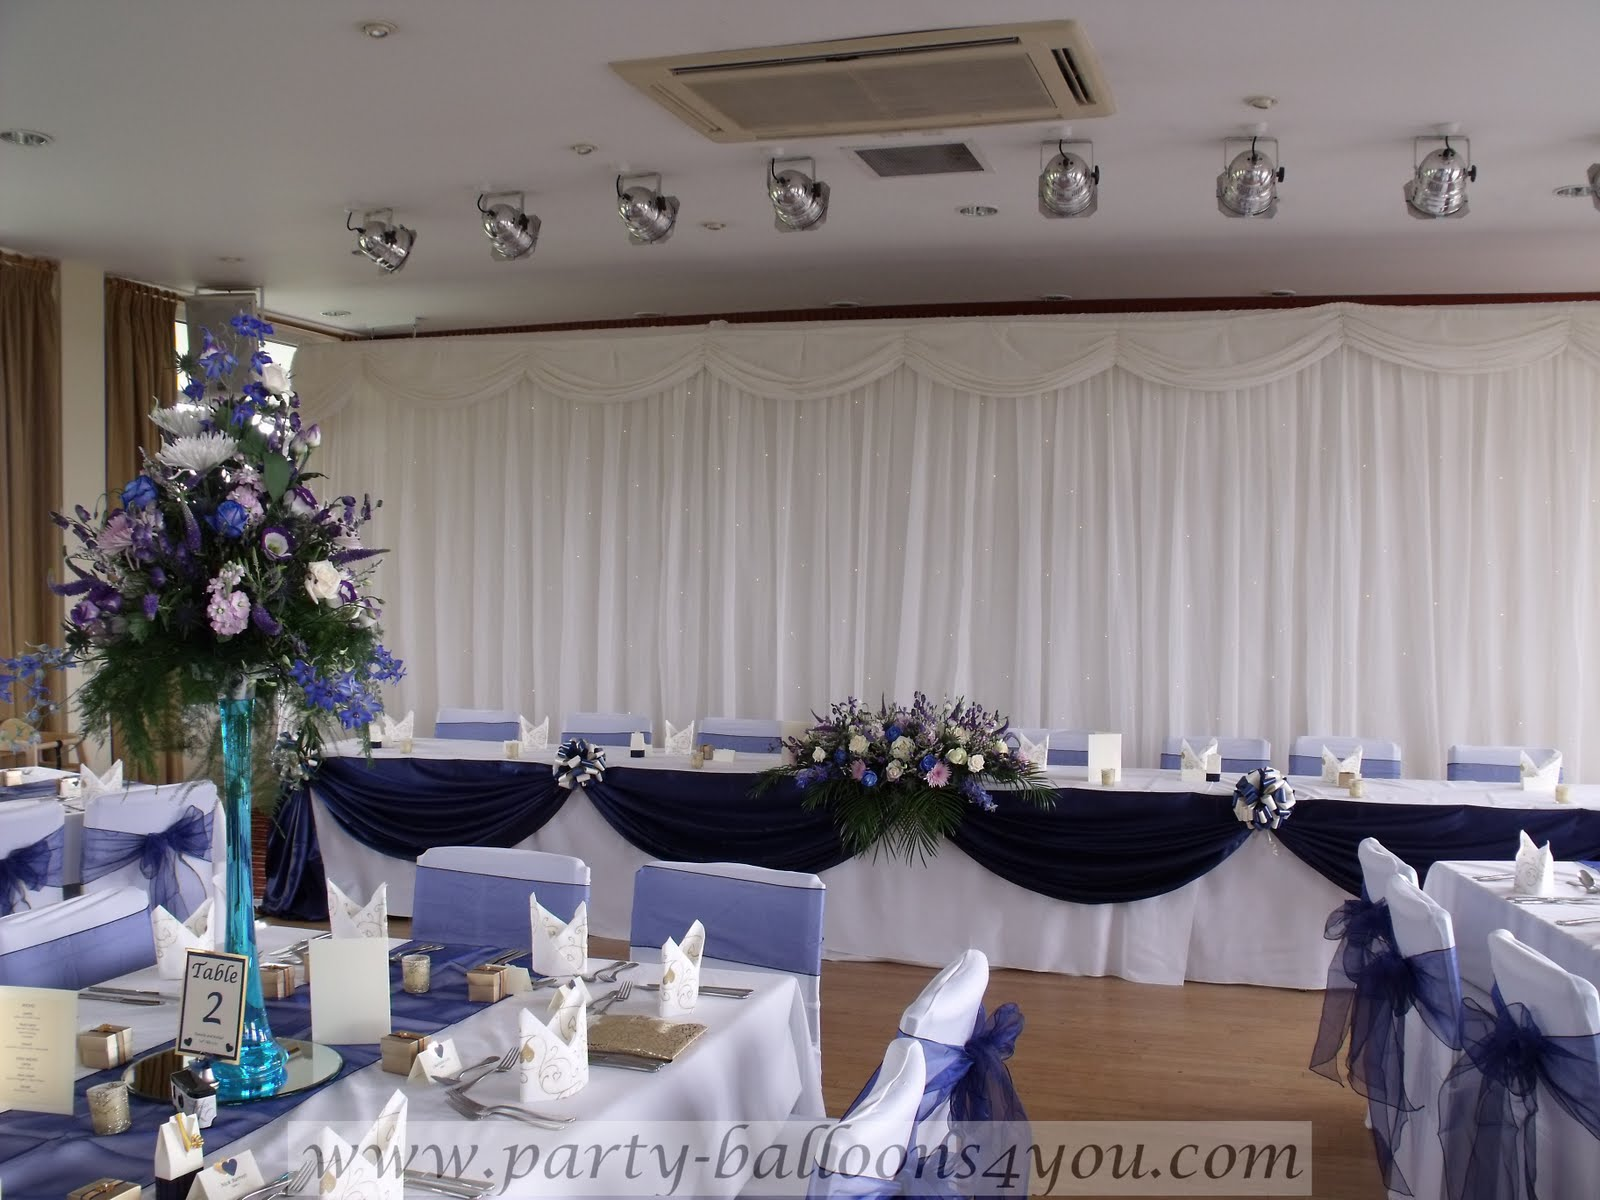 party balloons 4 you may 2011 With navy blue wedding decorations